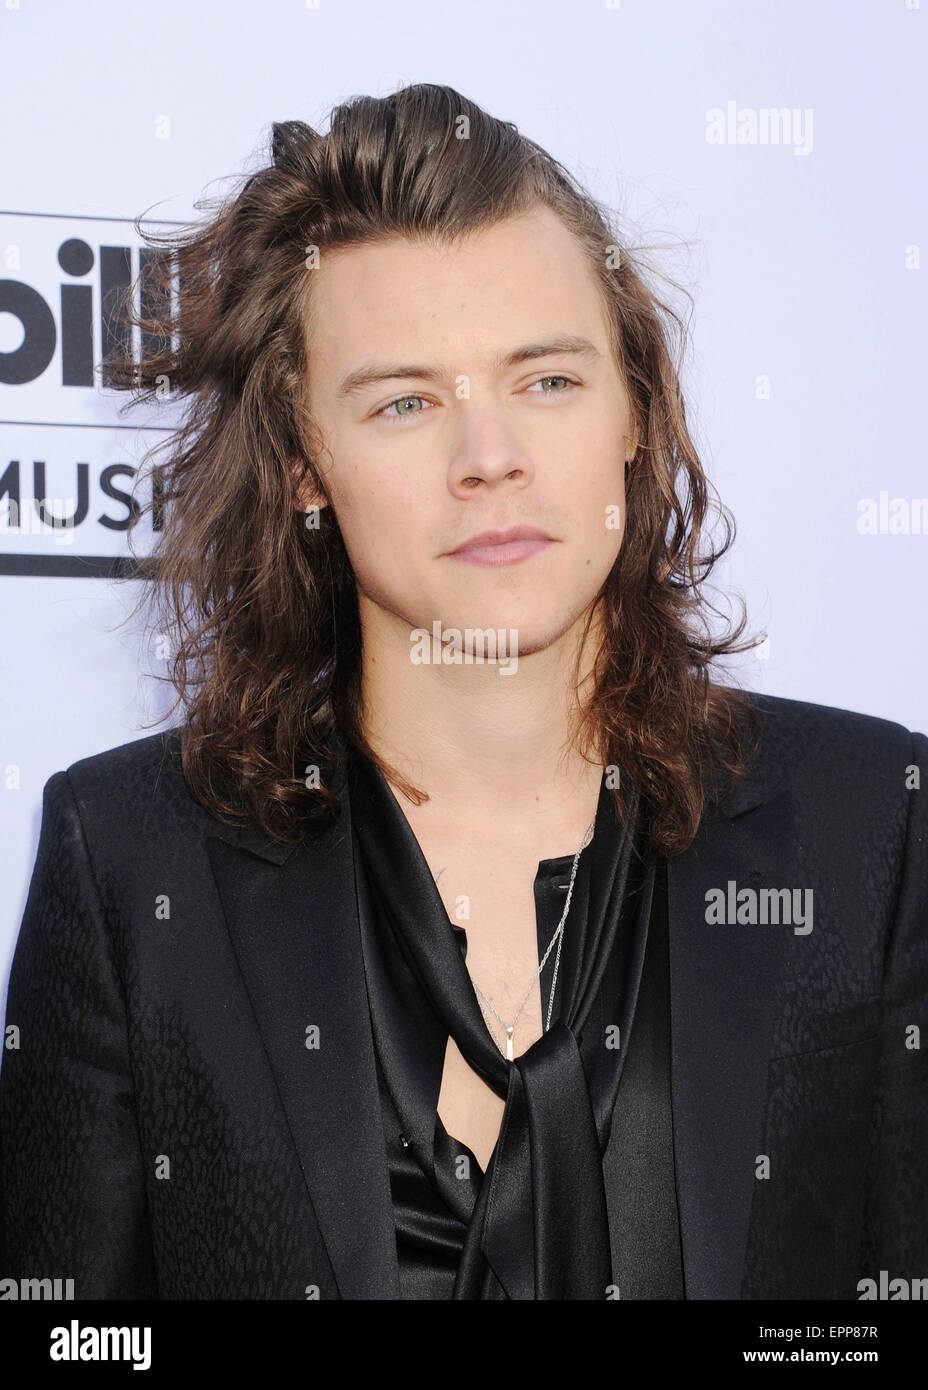 ONE DIRECTION  Harry Stiles in May 2015 at the Billboard Awards in Las Vegas - Stock Image